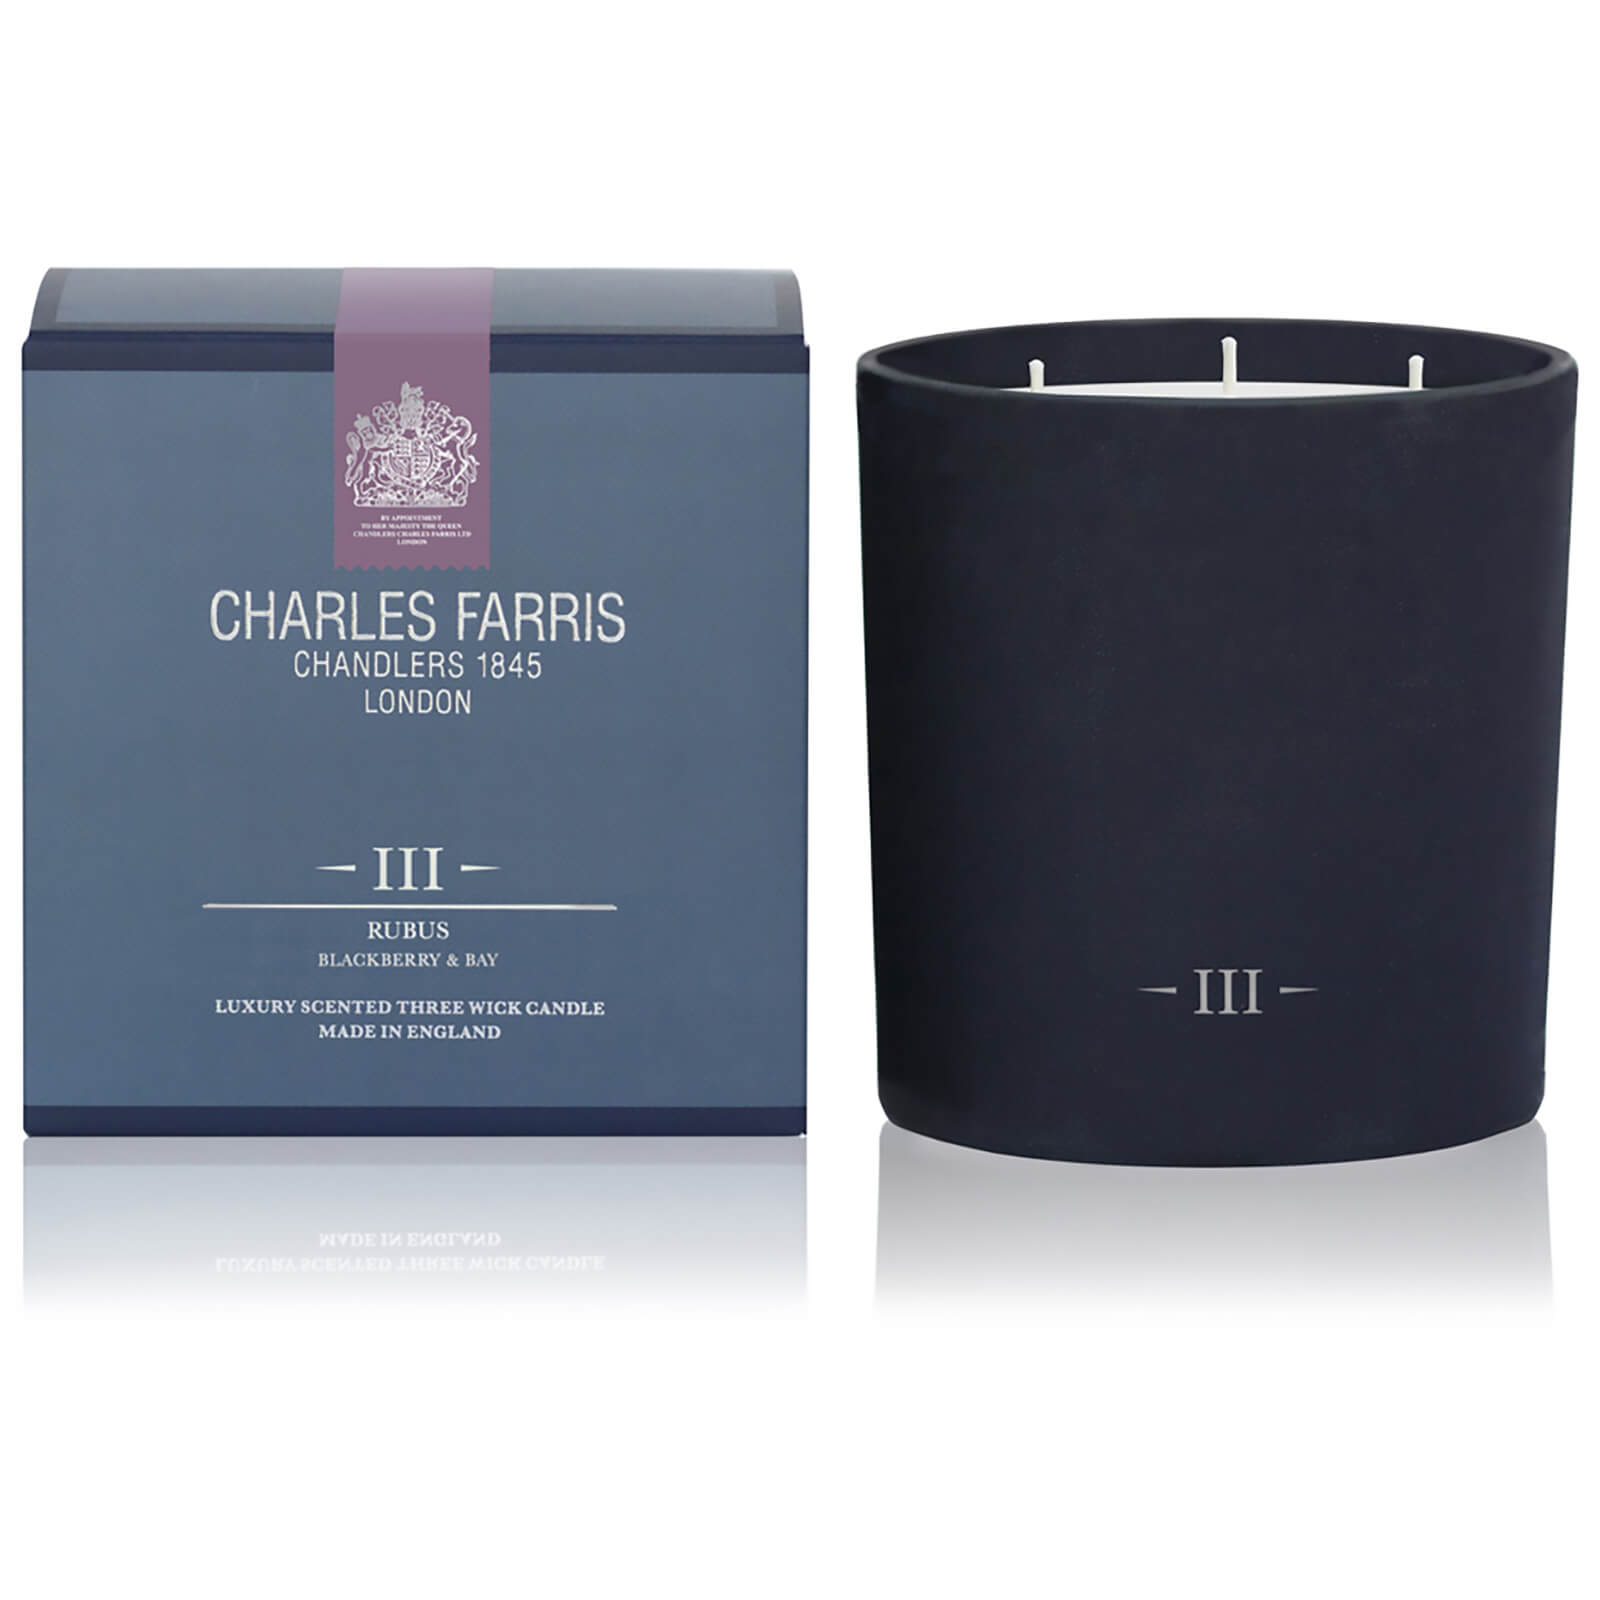 Charles Farris Signature Rubus 3 Wick Candle 1475g